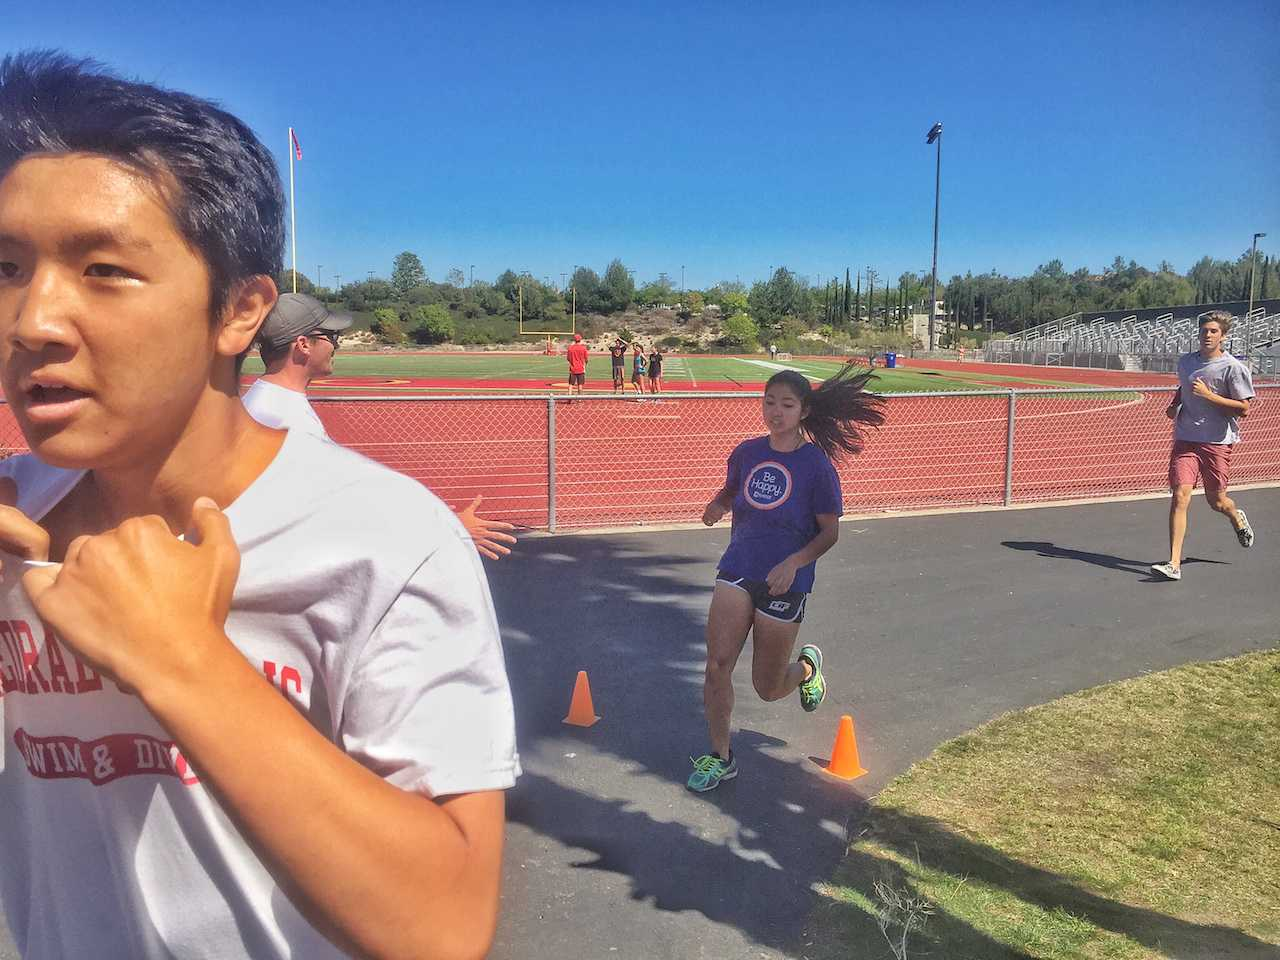 Young Han '18 prepares to dive into the swimming portion of the swim and track meet while Claire Hobrock '16 crosses the finish line to the running portion and Dennis Blyashov '17 trails behind.